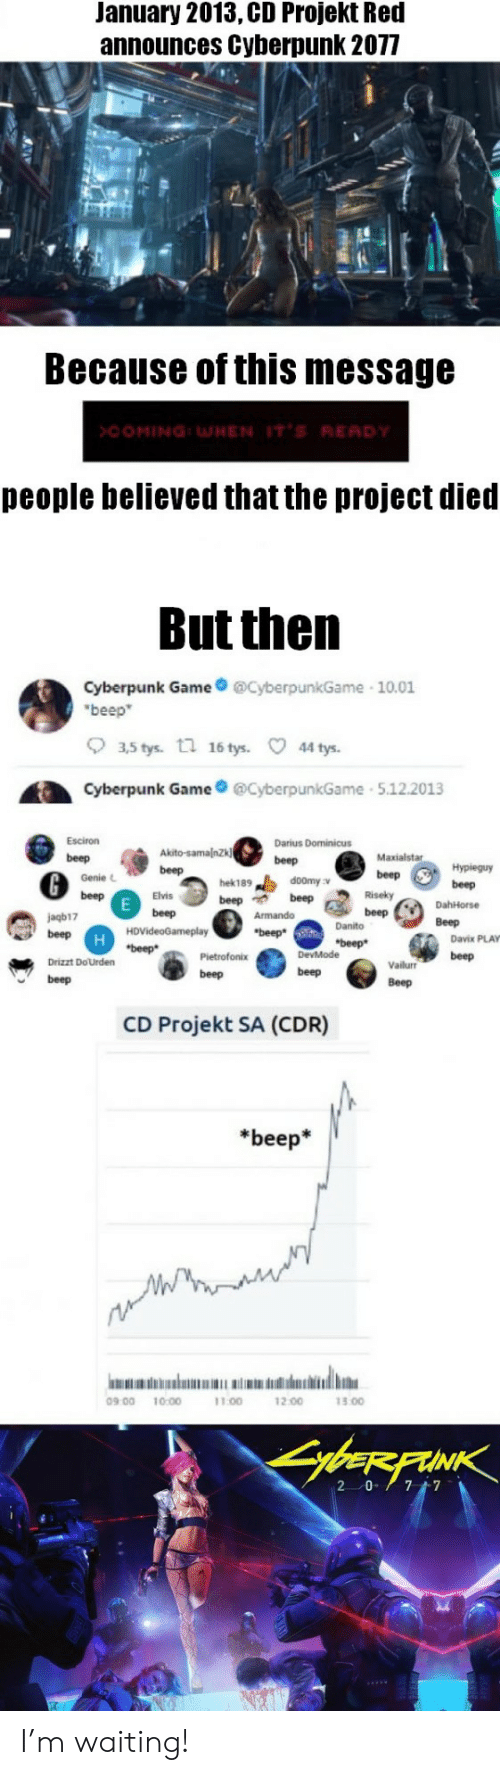 Beep Beep Beep: January 2013, CD Projekt Red  announces Cyberpunk 2077  Because of this message  >COMING:WHEN IT'S RE  people believed that the project died  But then  Cyberpunk Game@CyberpunkGame 10.01  beep  。35tys.  n  16 tys.  44 tys.  Cyberpunk GameyberpunkGame 5.122013  @beGen.bete  Esciron  Darius Dominicus  beep m.e: se-,  Maxialstar  Genie L  hek189  doomy v  Elvis  jagb17  Danito  Davix PLAY  Vailur beep  Beep  Drizzt DoUrden  beep  beep  beep  CD Projekt SA (CDR)  *beep*  09 00 10:00  11.00  12.00  13.00 I'm waiting!